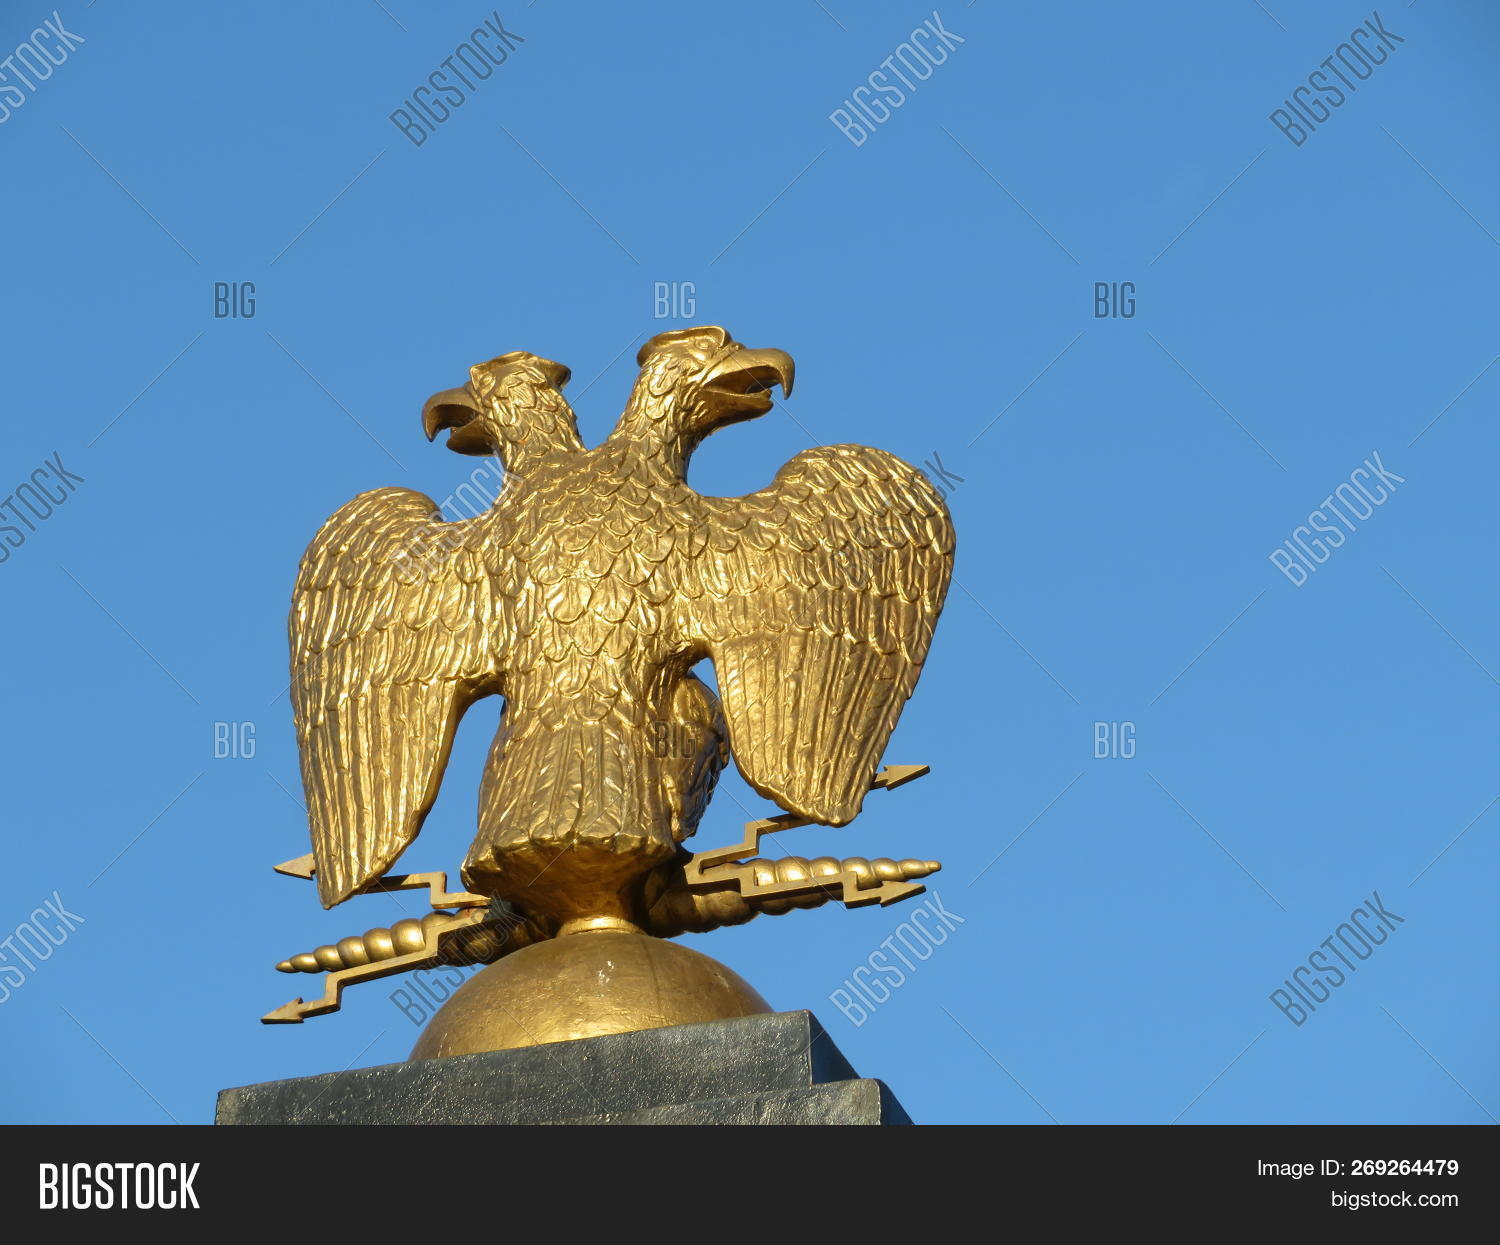 Two Headed Eagle On Blue Sky Background Russian Imperial Emblem Golden Double